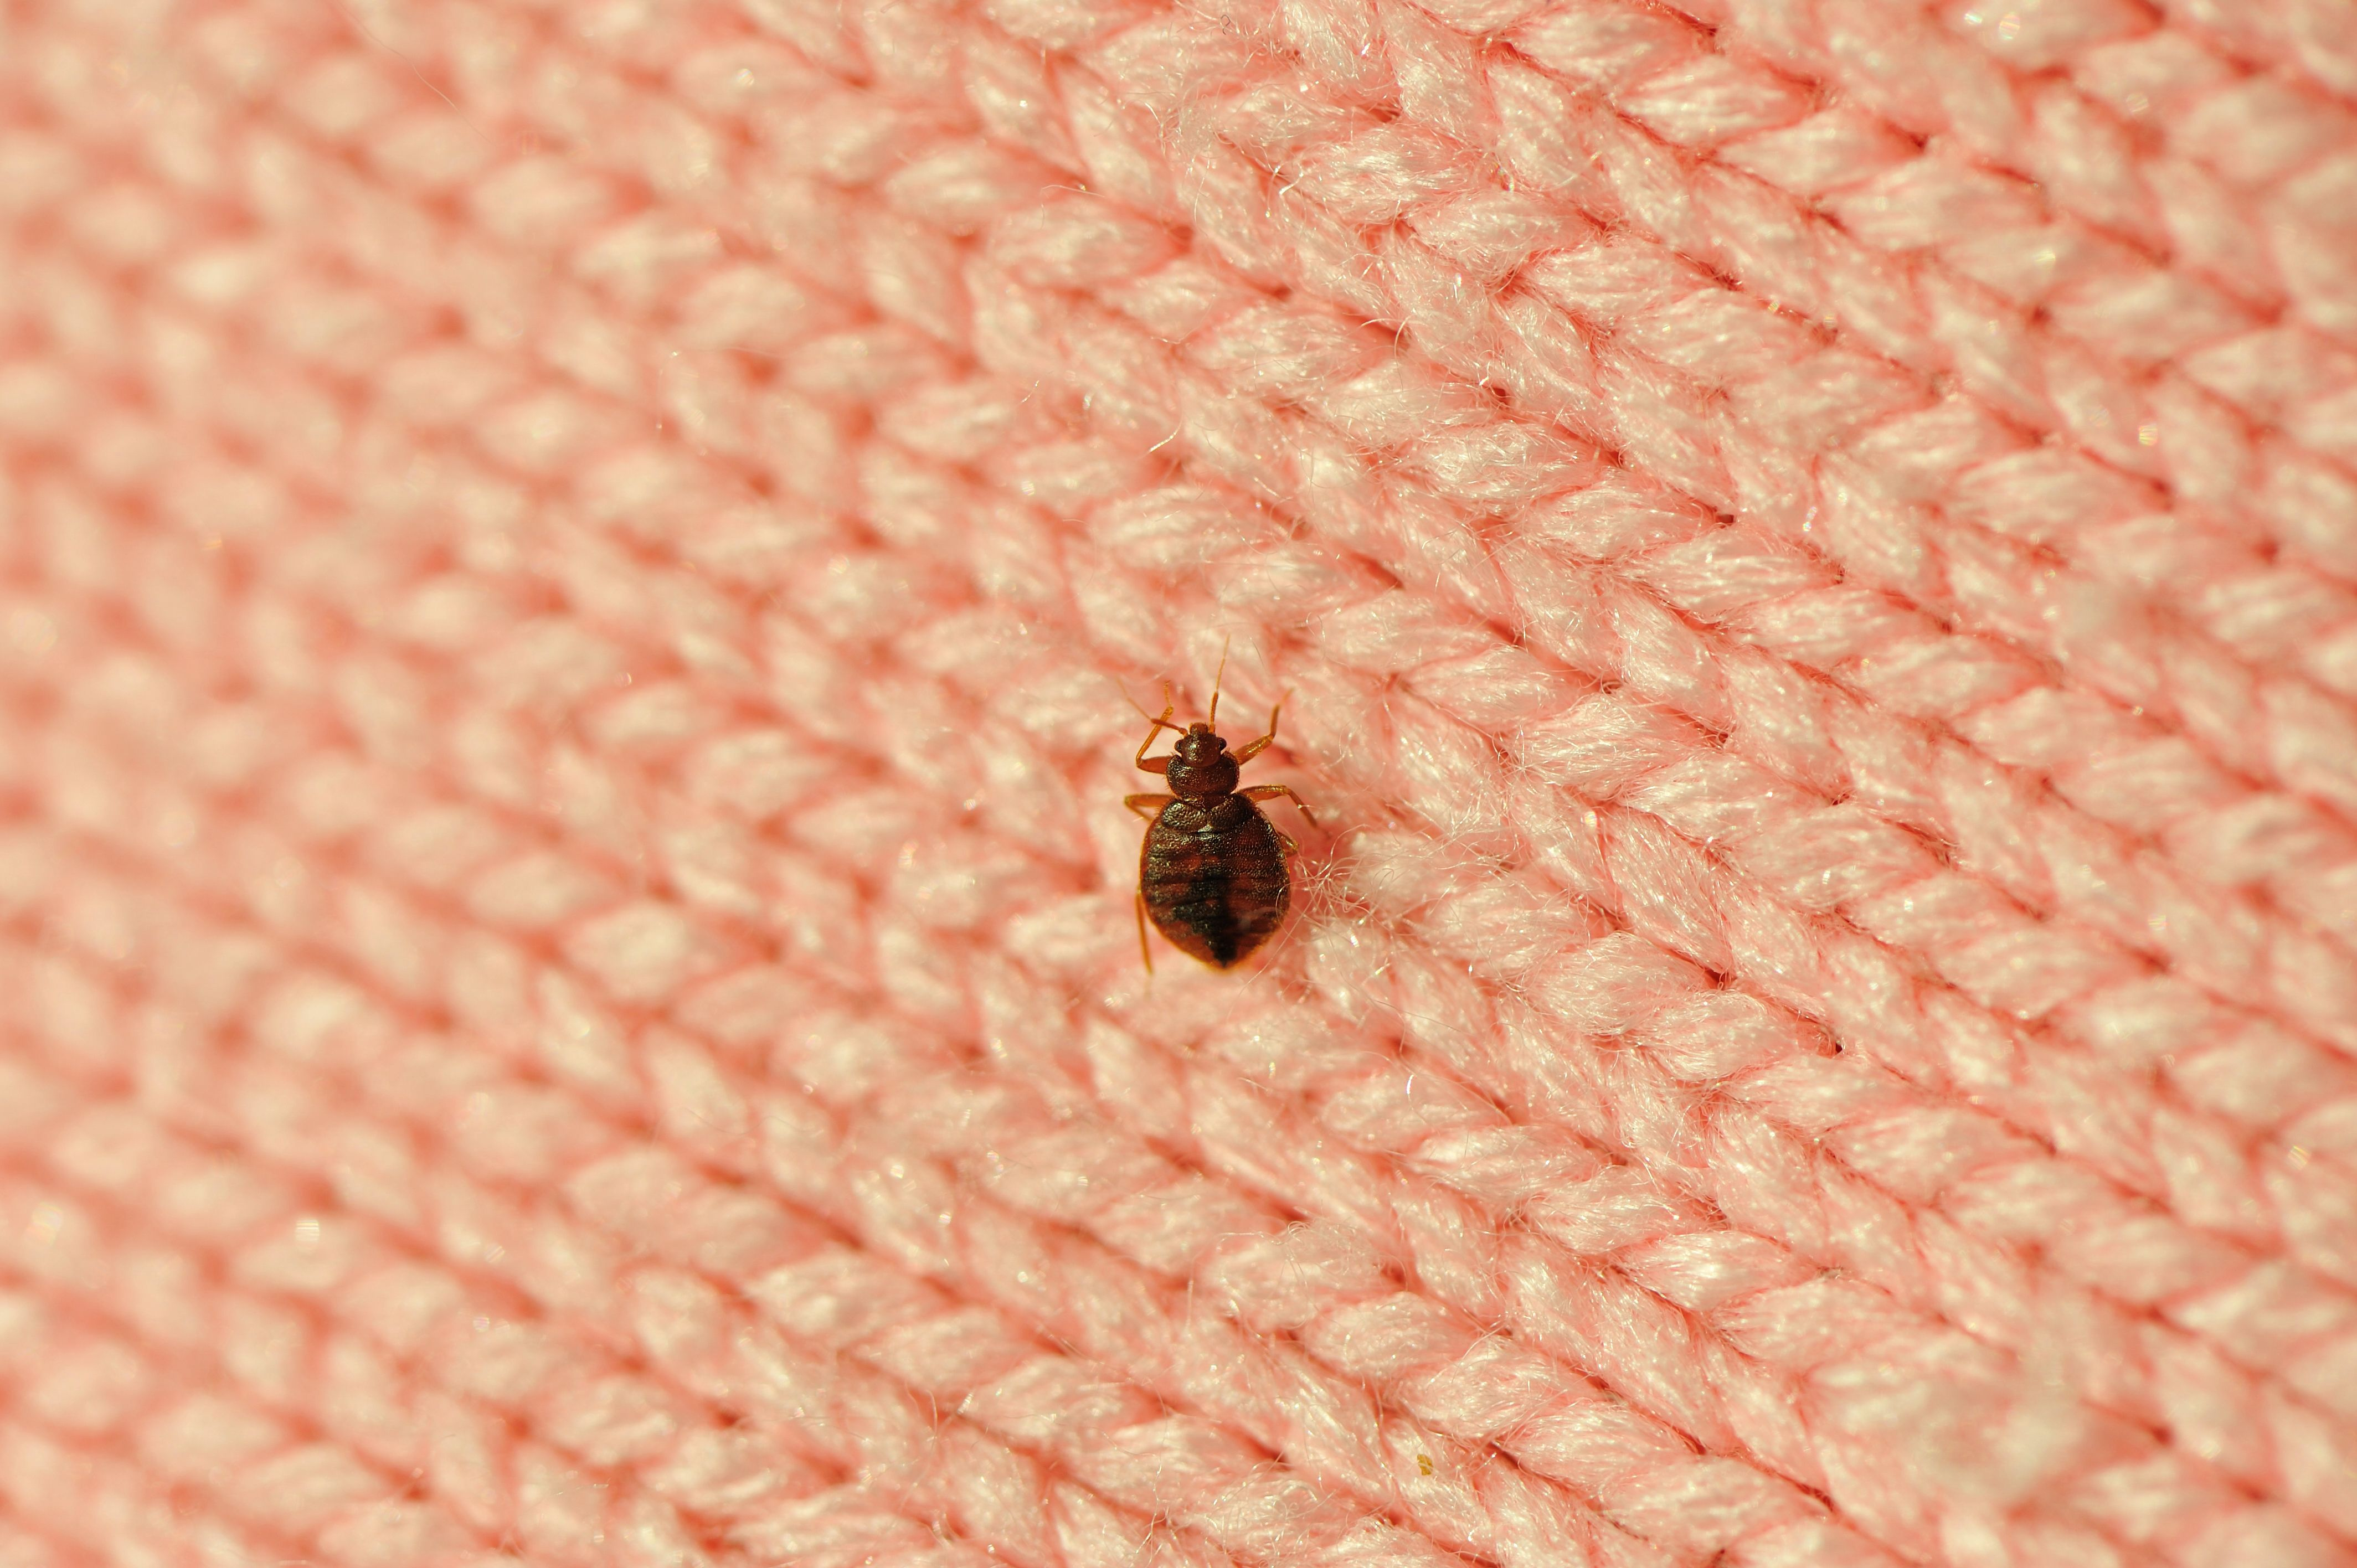 How To Get Rid Of Bed Bugs Step By Step Plan From Entomologists